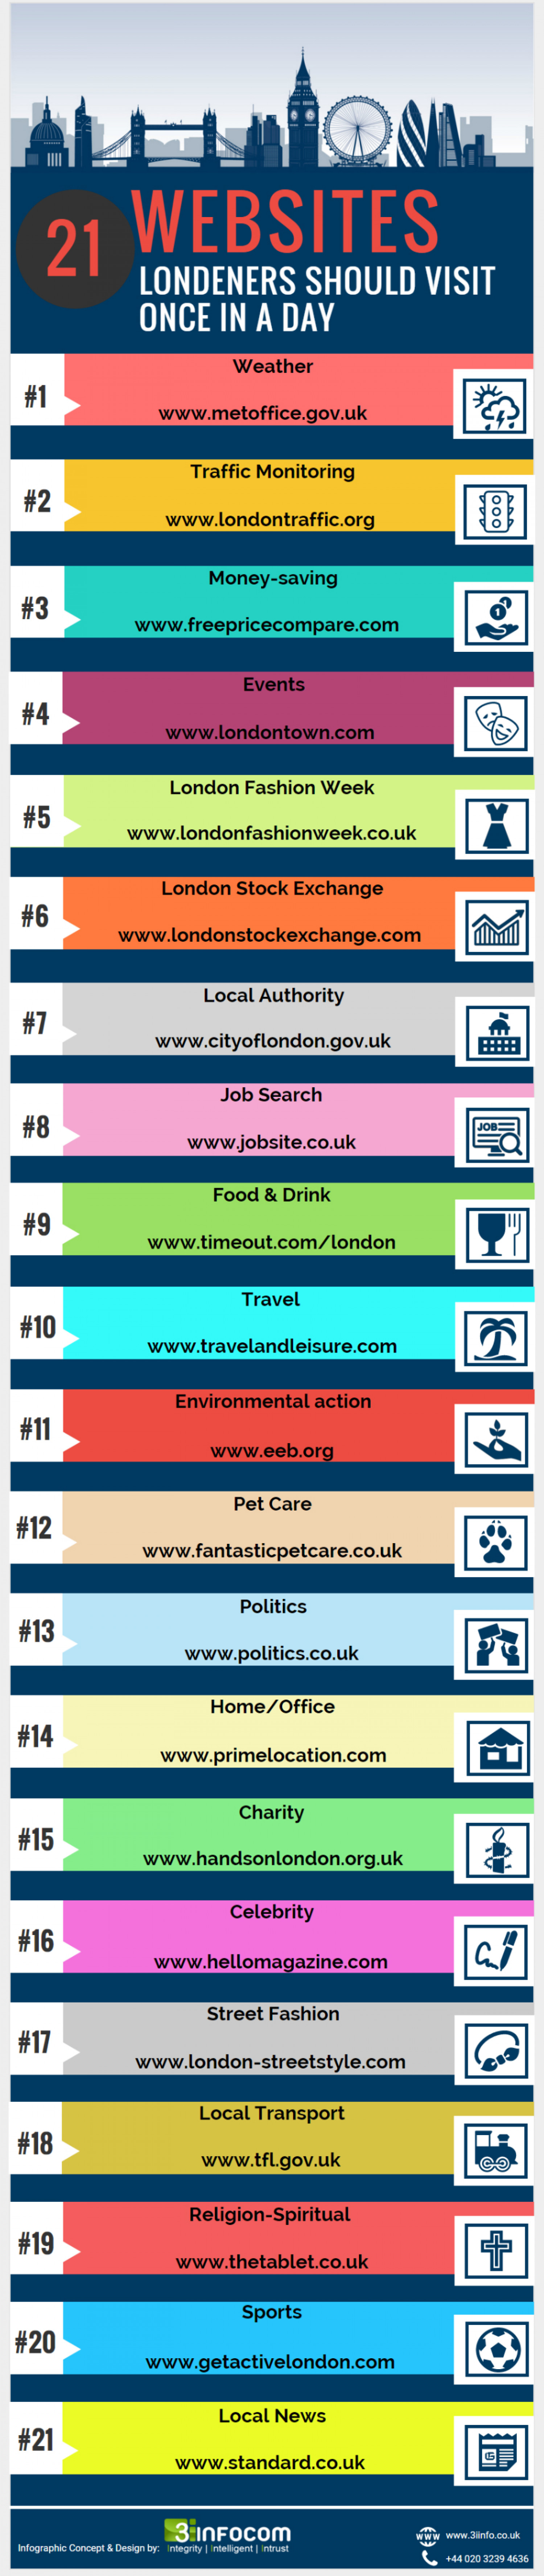 21 Websites Londoners should visit once in a day Infographic